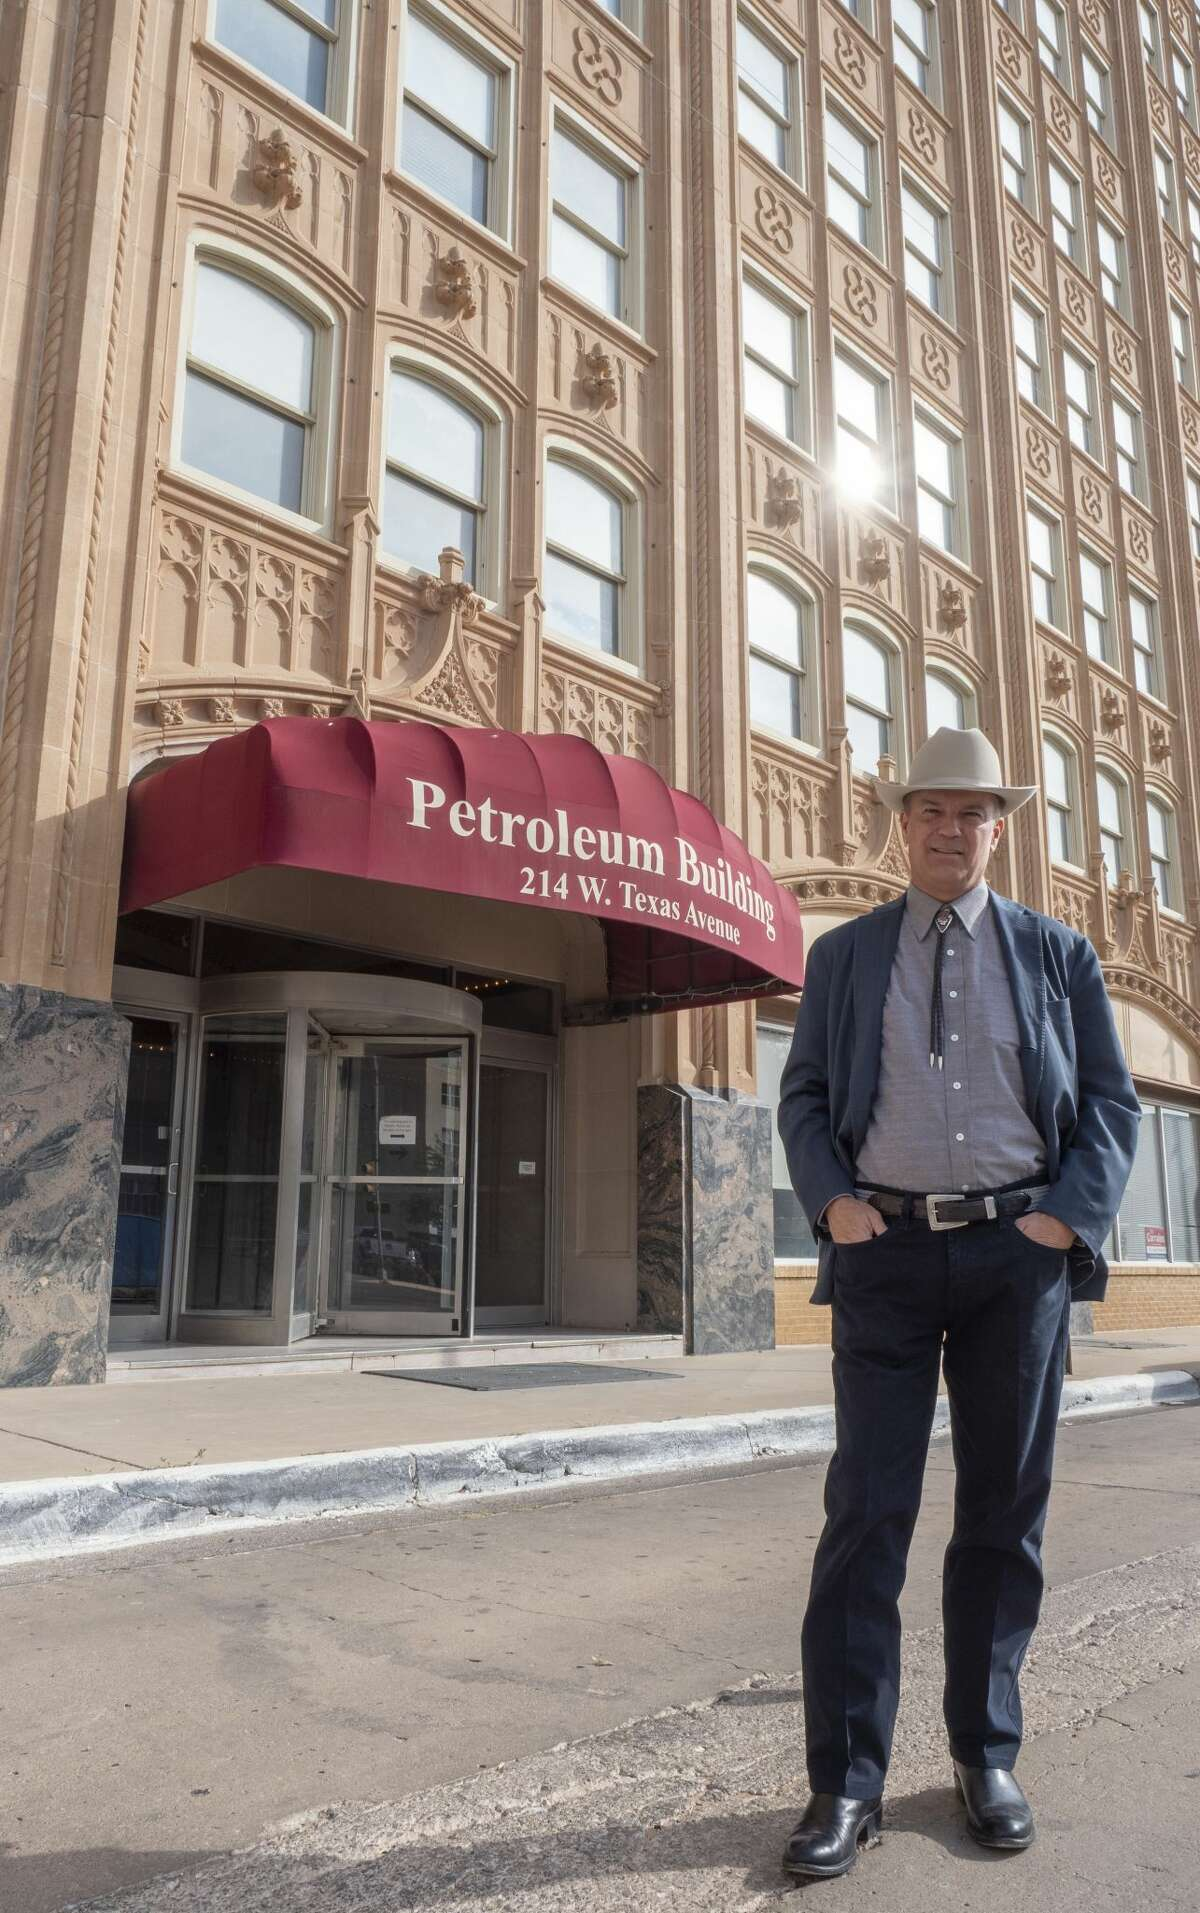 David Arrington, who has owned the Petroleum Building since the 1990s, said lower price levels are caused primarily by COVID-19 and the lack of demand.